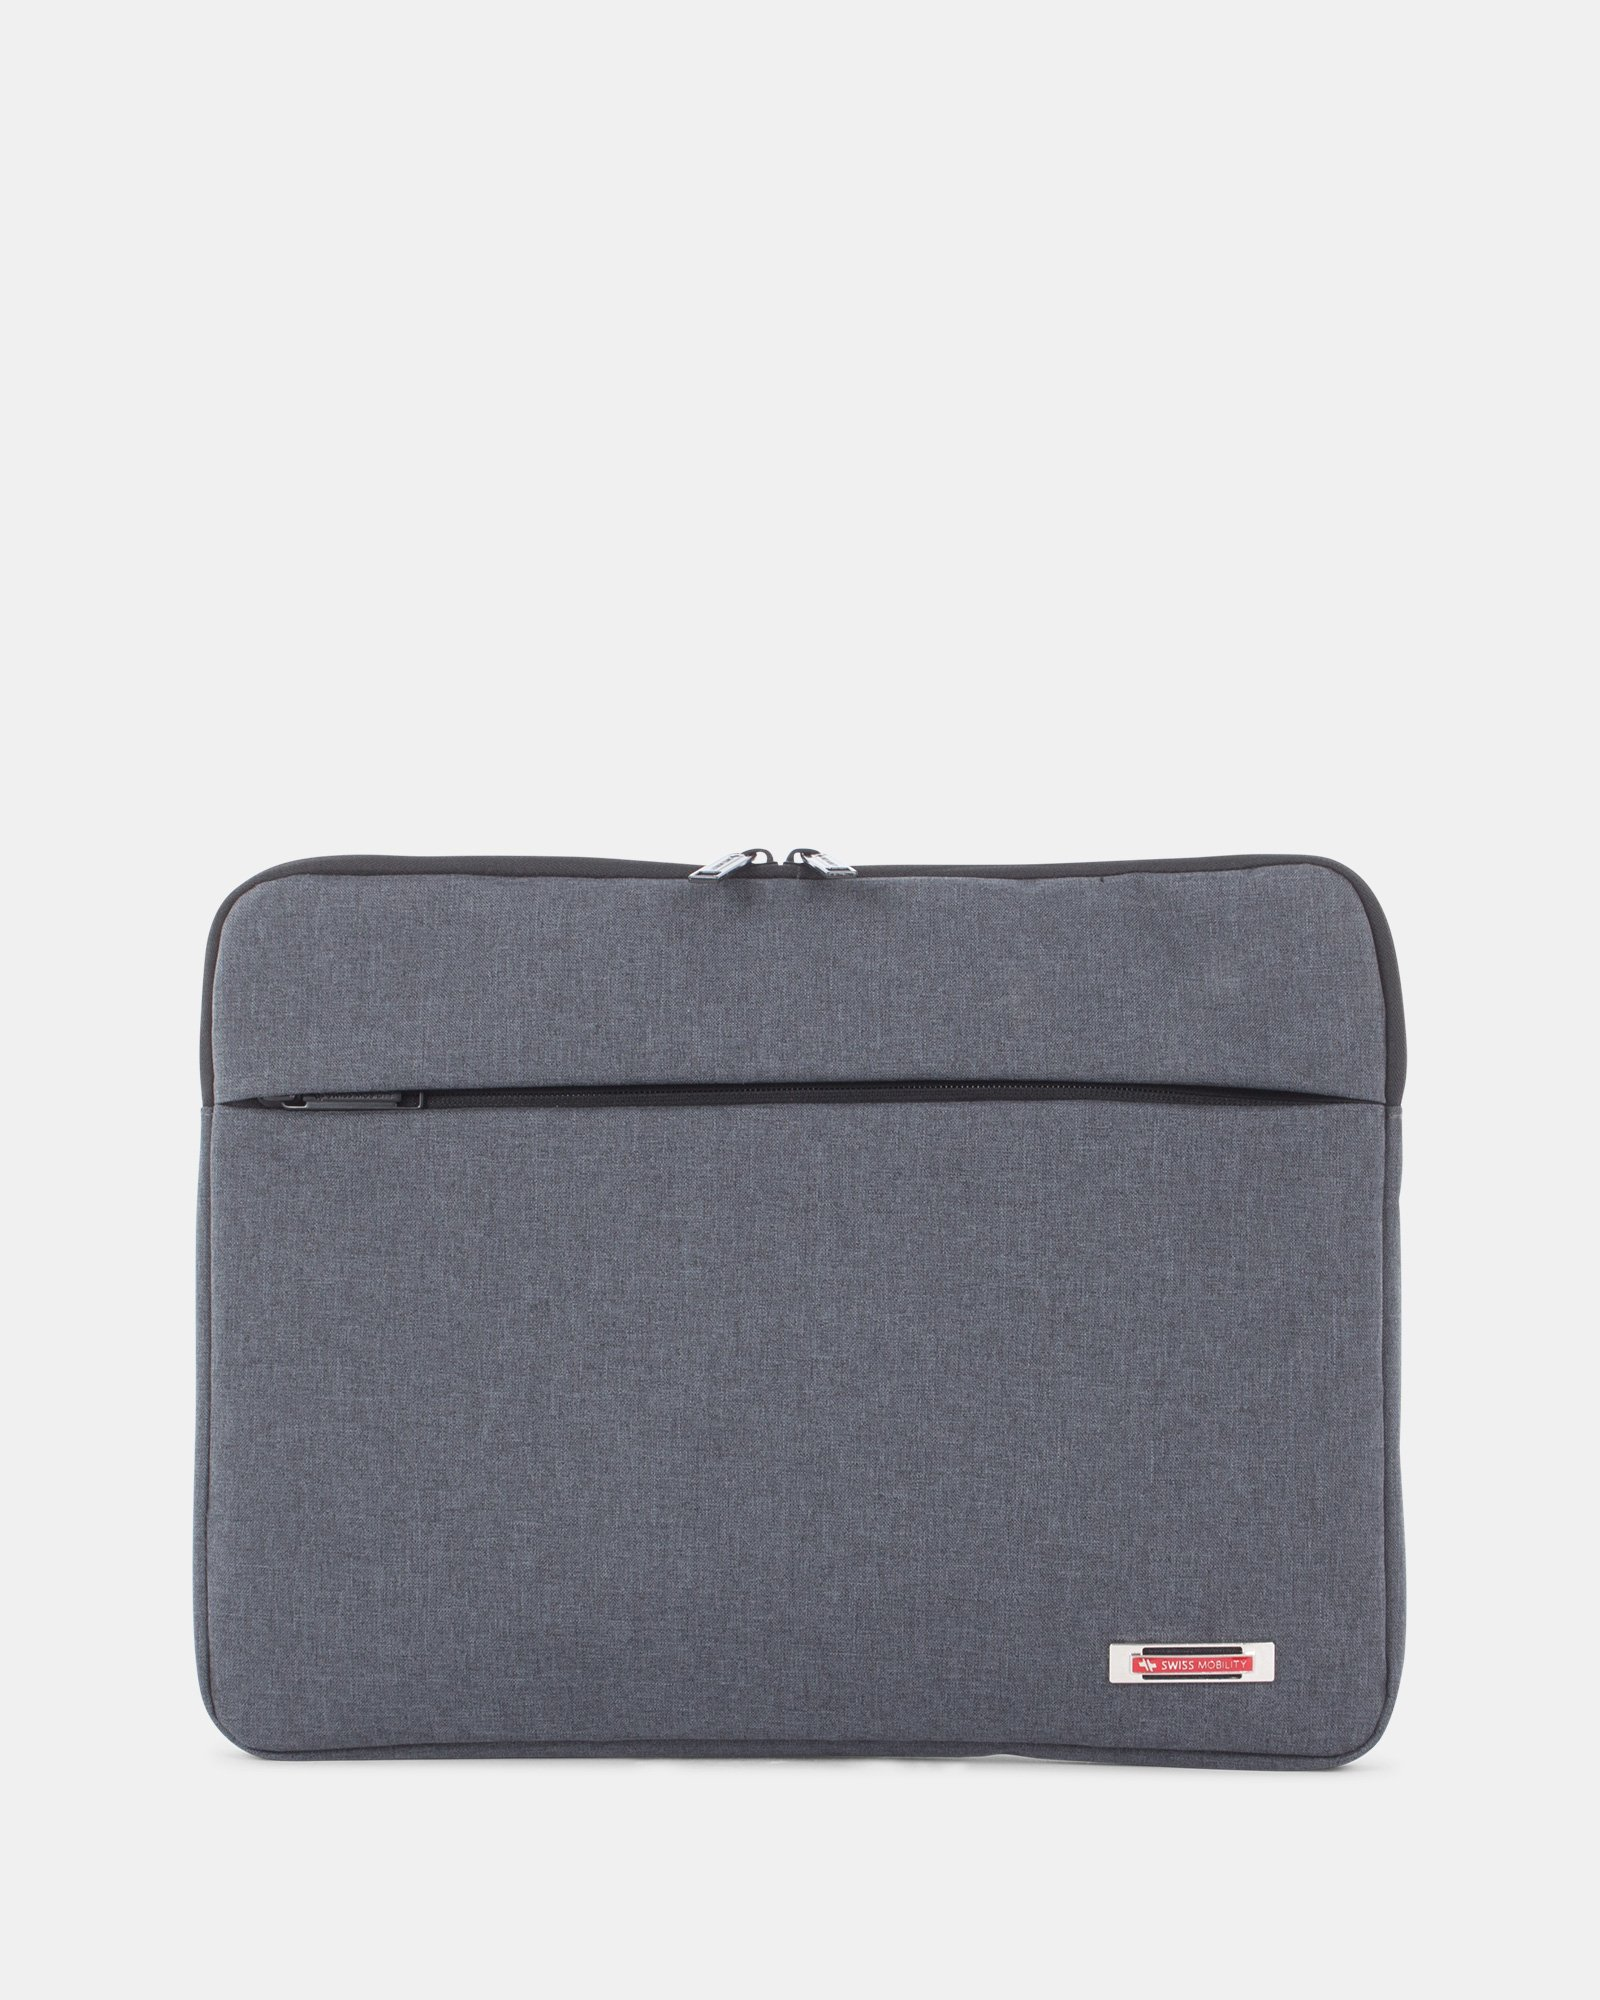 Elevate – Laptop Sleeve - Swiss Mobility - Zoom